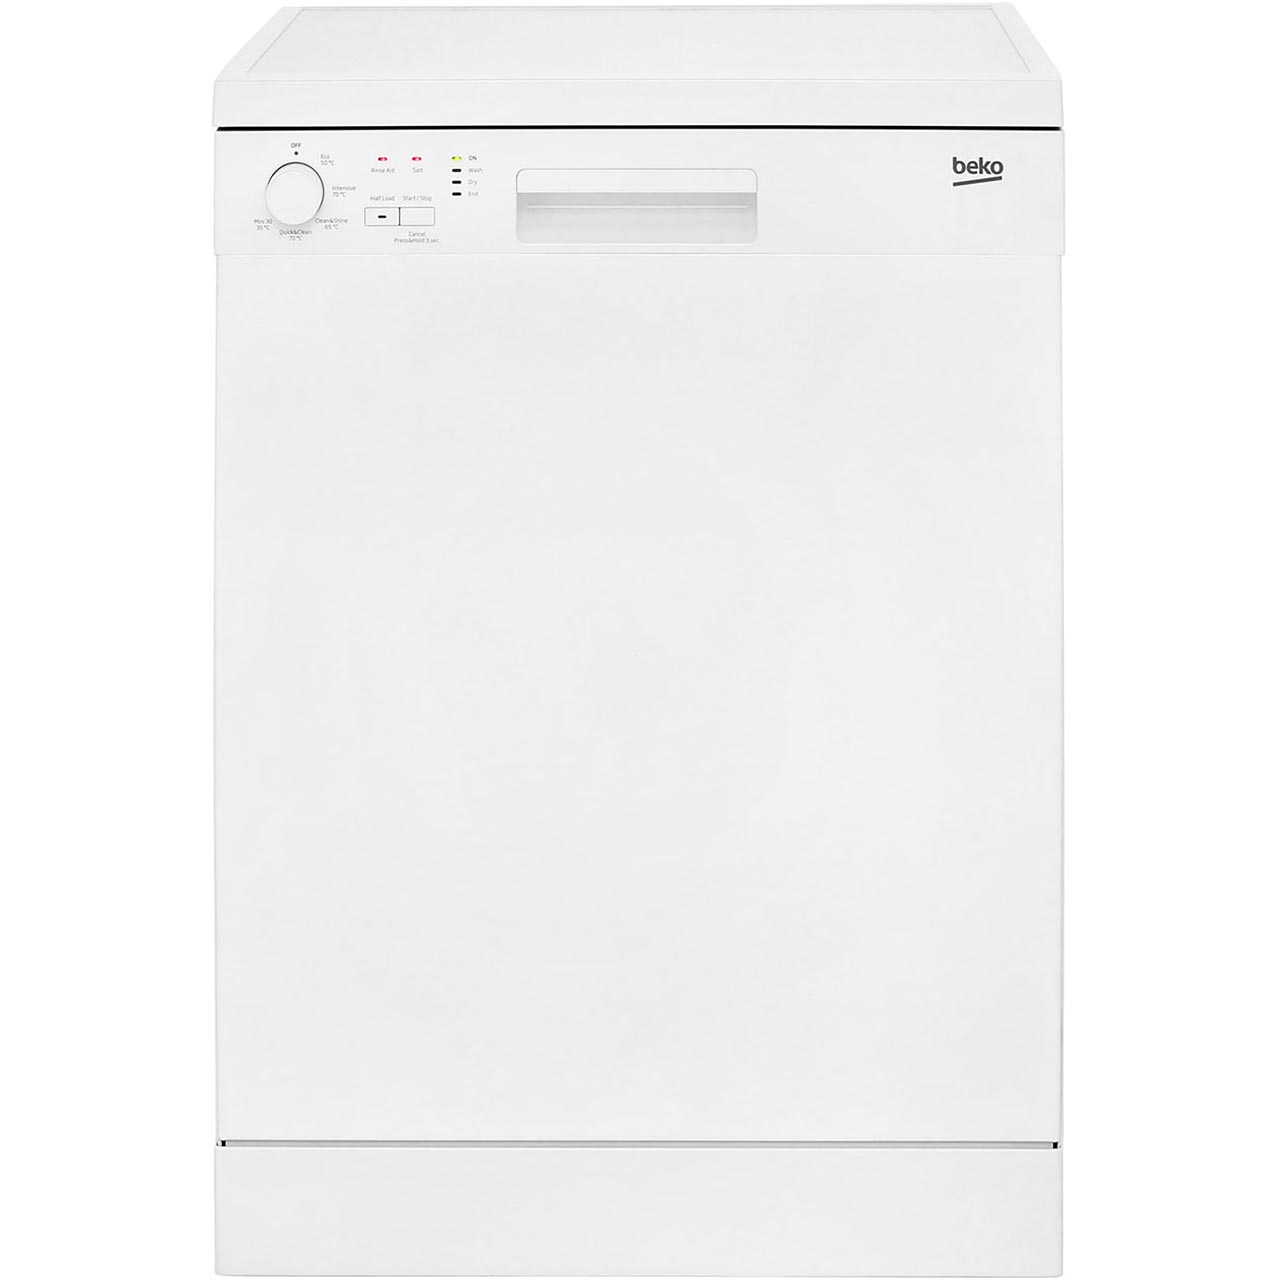 Beko dishwasher